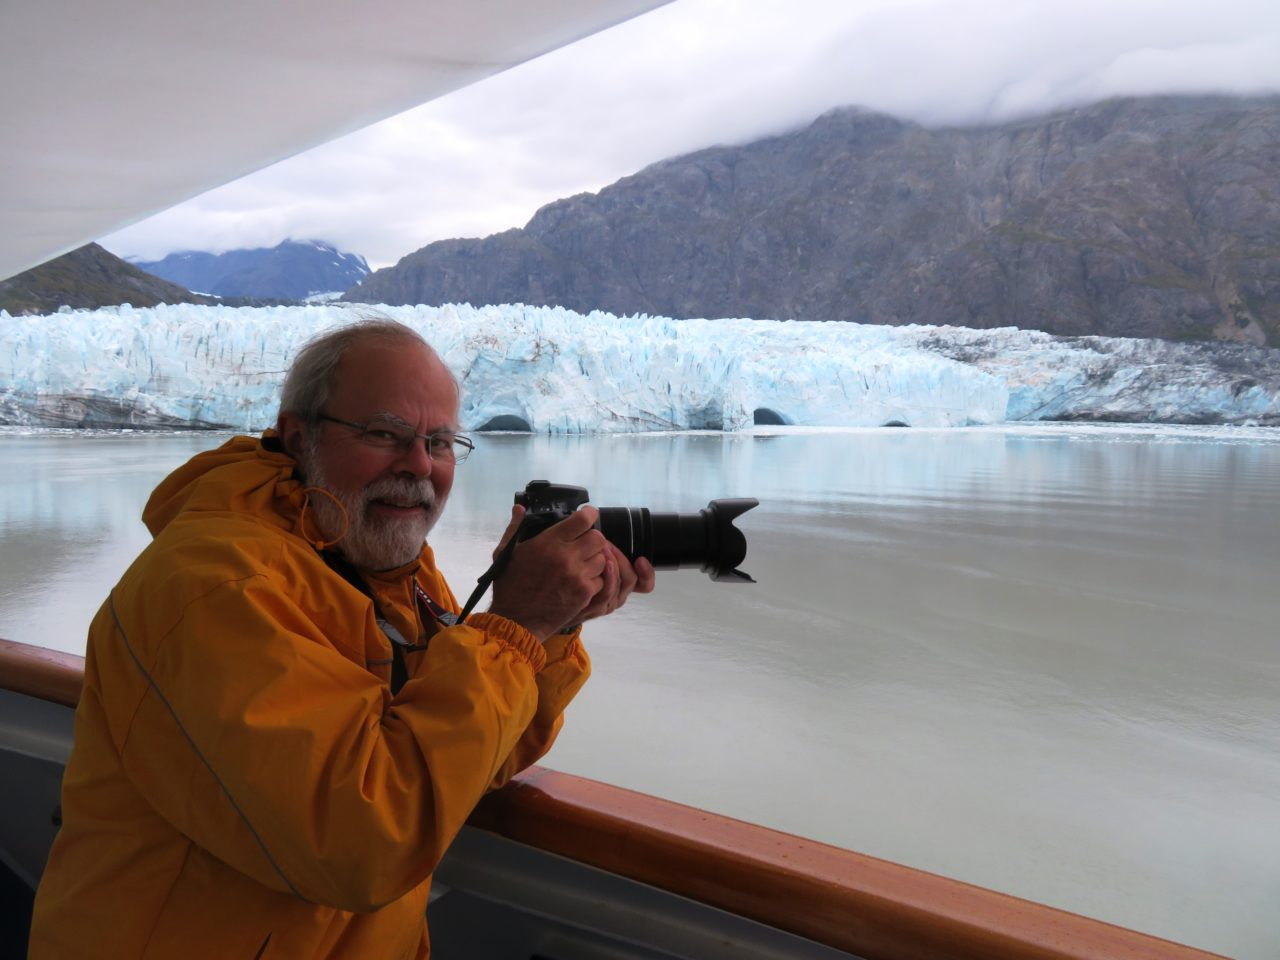 Louis-Simon enjoying Glacier Bay during our Alaska Cruise with Princess Cruises